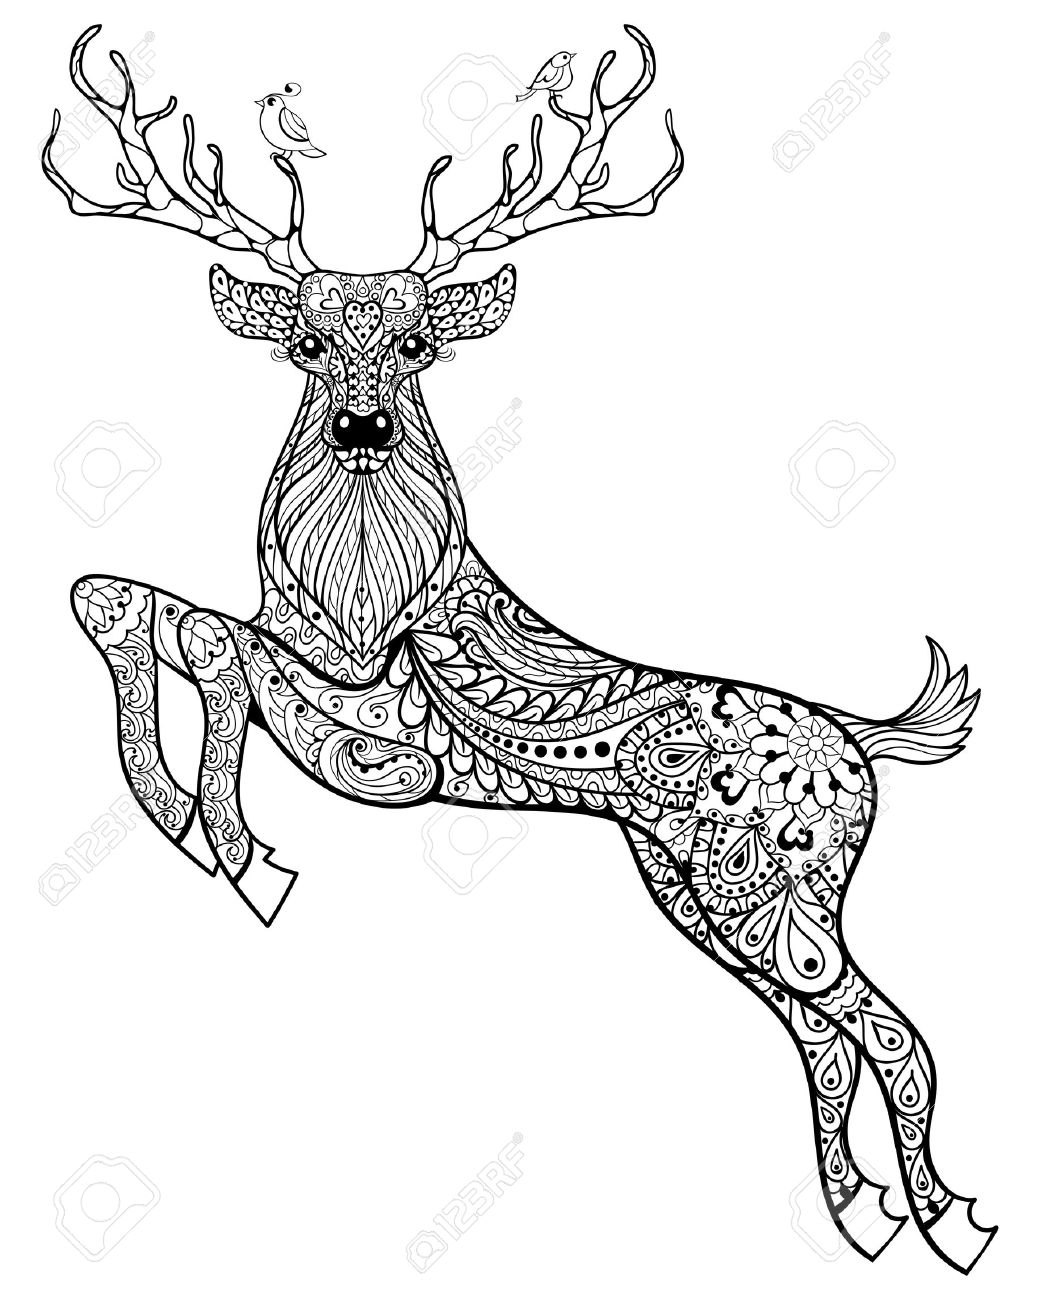 Hand drawn magic horned deer with birds for adult anti stress Coloring Page with high details isolated on white background, illustration in zentangle style. Vector monochrome sketch. Animal collection. - 51458786